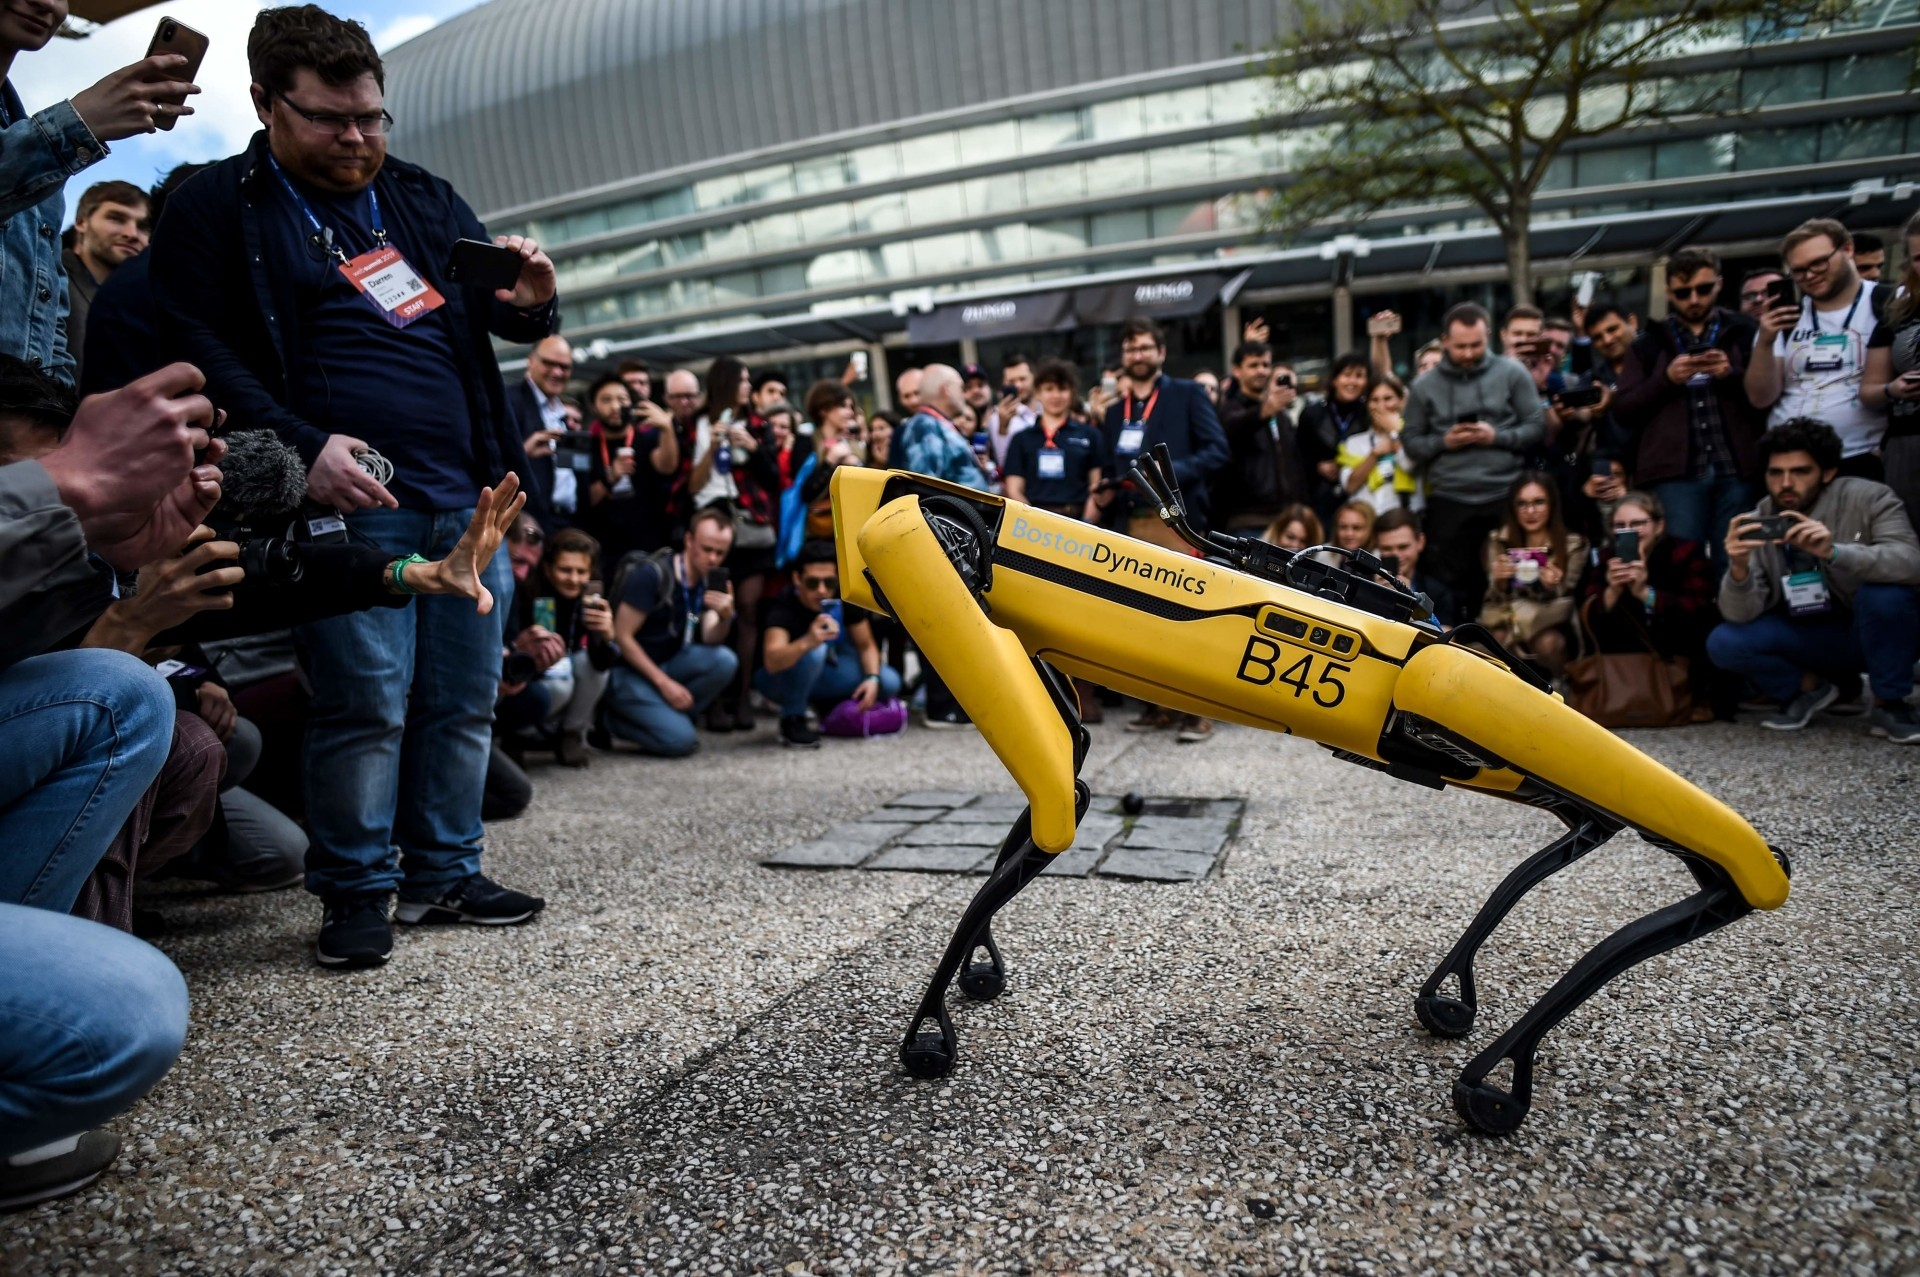 'Spot' the robot dog interacting with the crowd at the 2019 Web Summit.